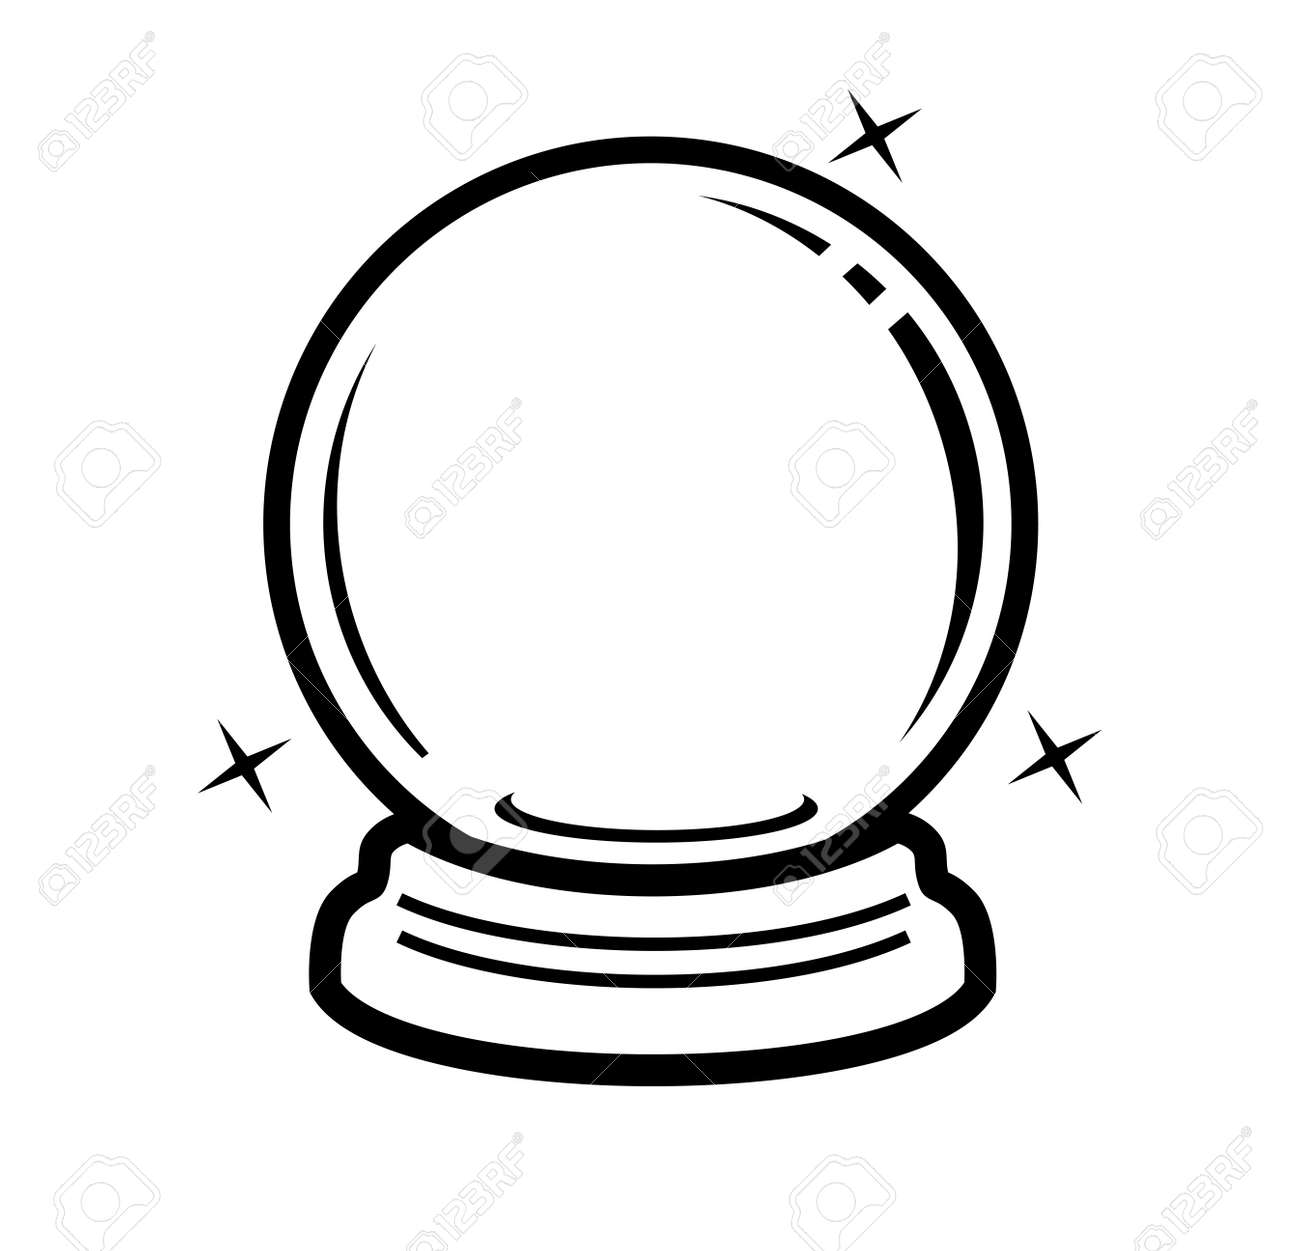 vector black crystal ball icon on white royalty free cliparts rh 123rf com crystal ball clipart images crystal ball clipart free